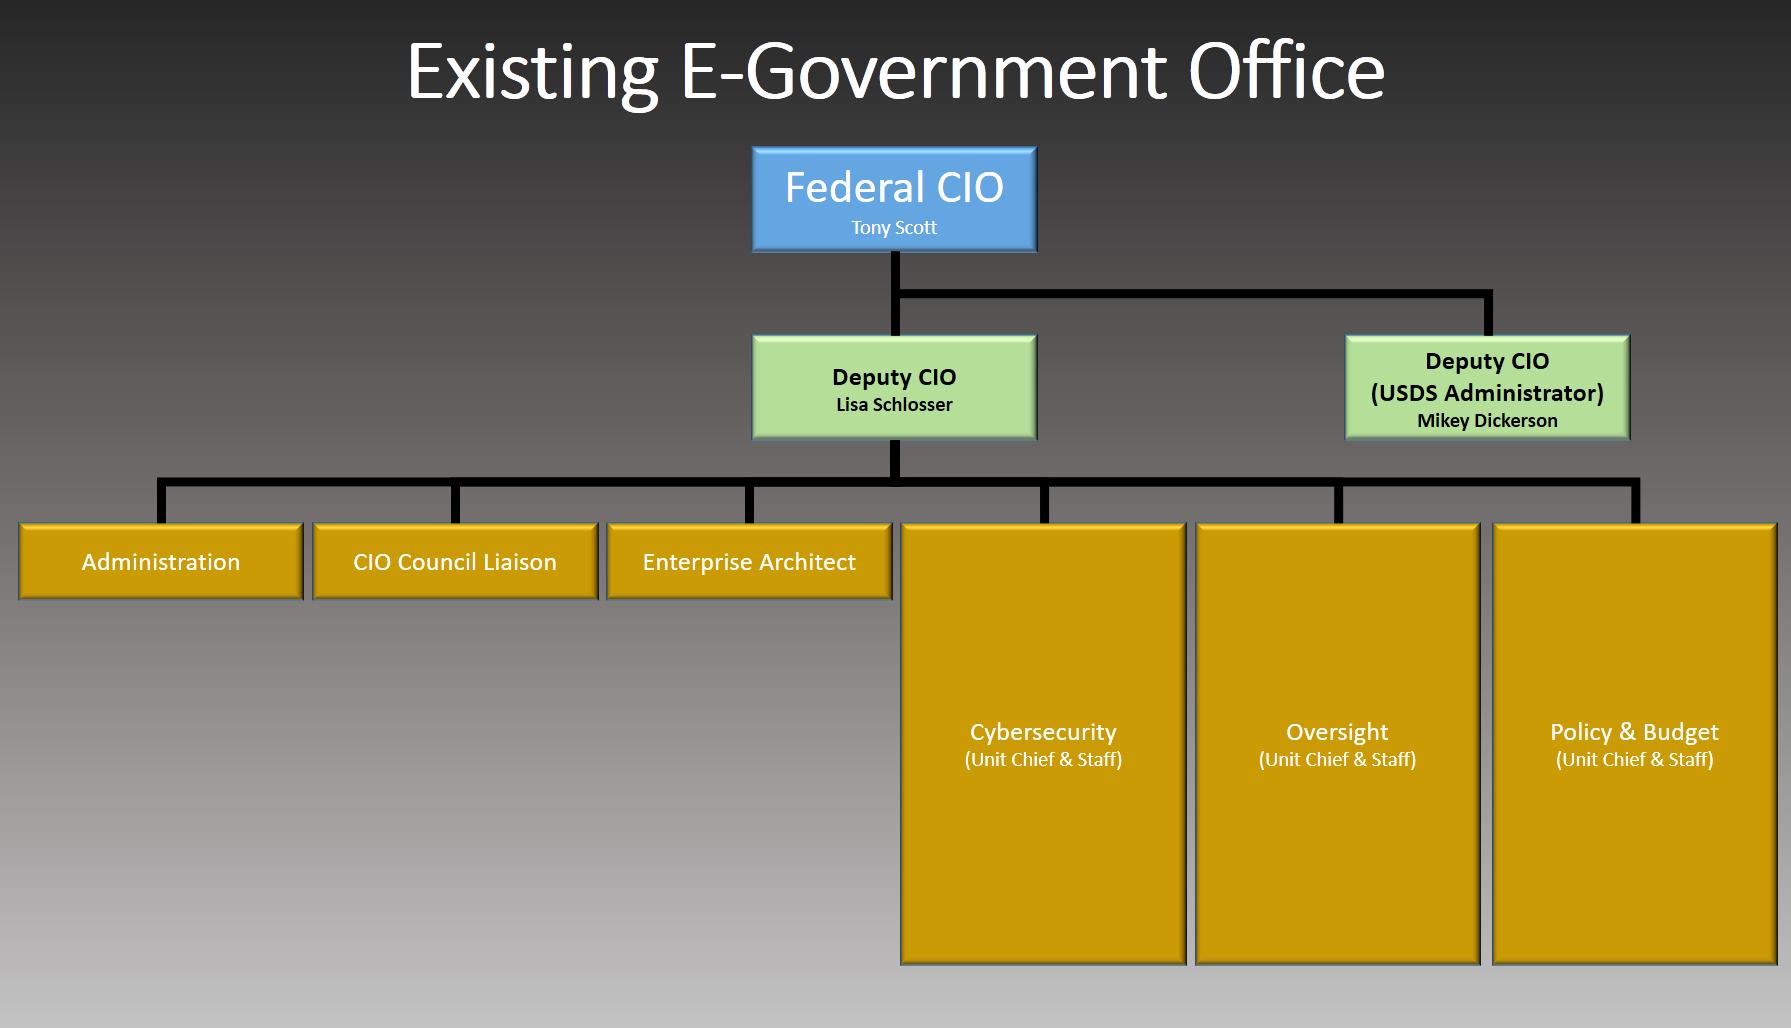 Organizational chart of the existing Office of Management and Budget Office of E-Government & Information Technology.